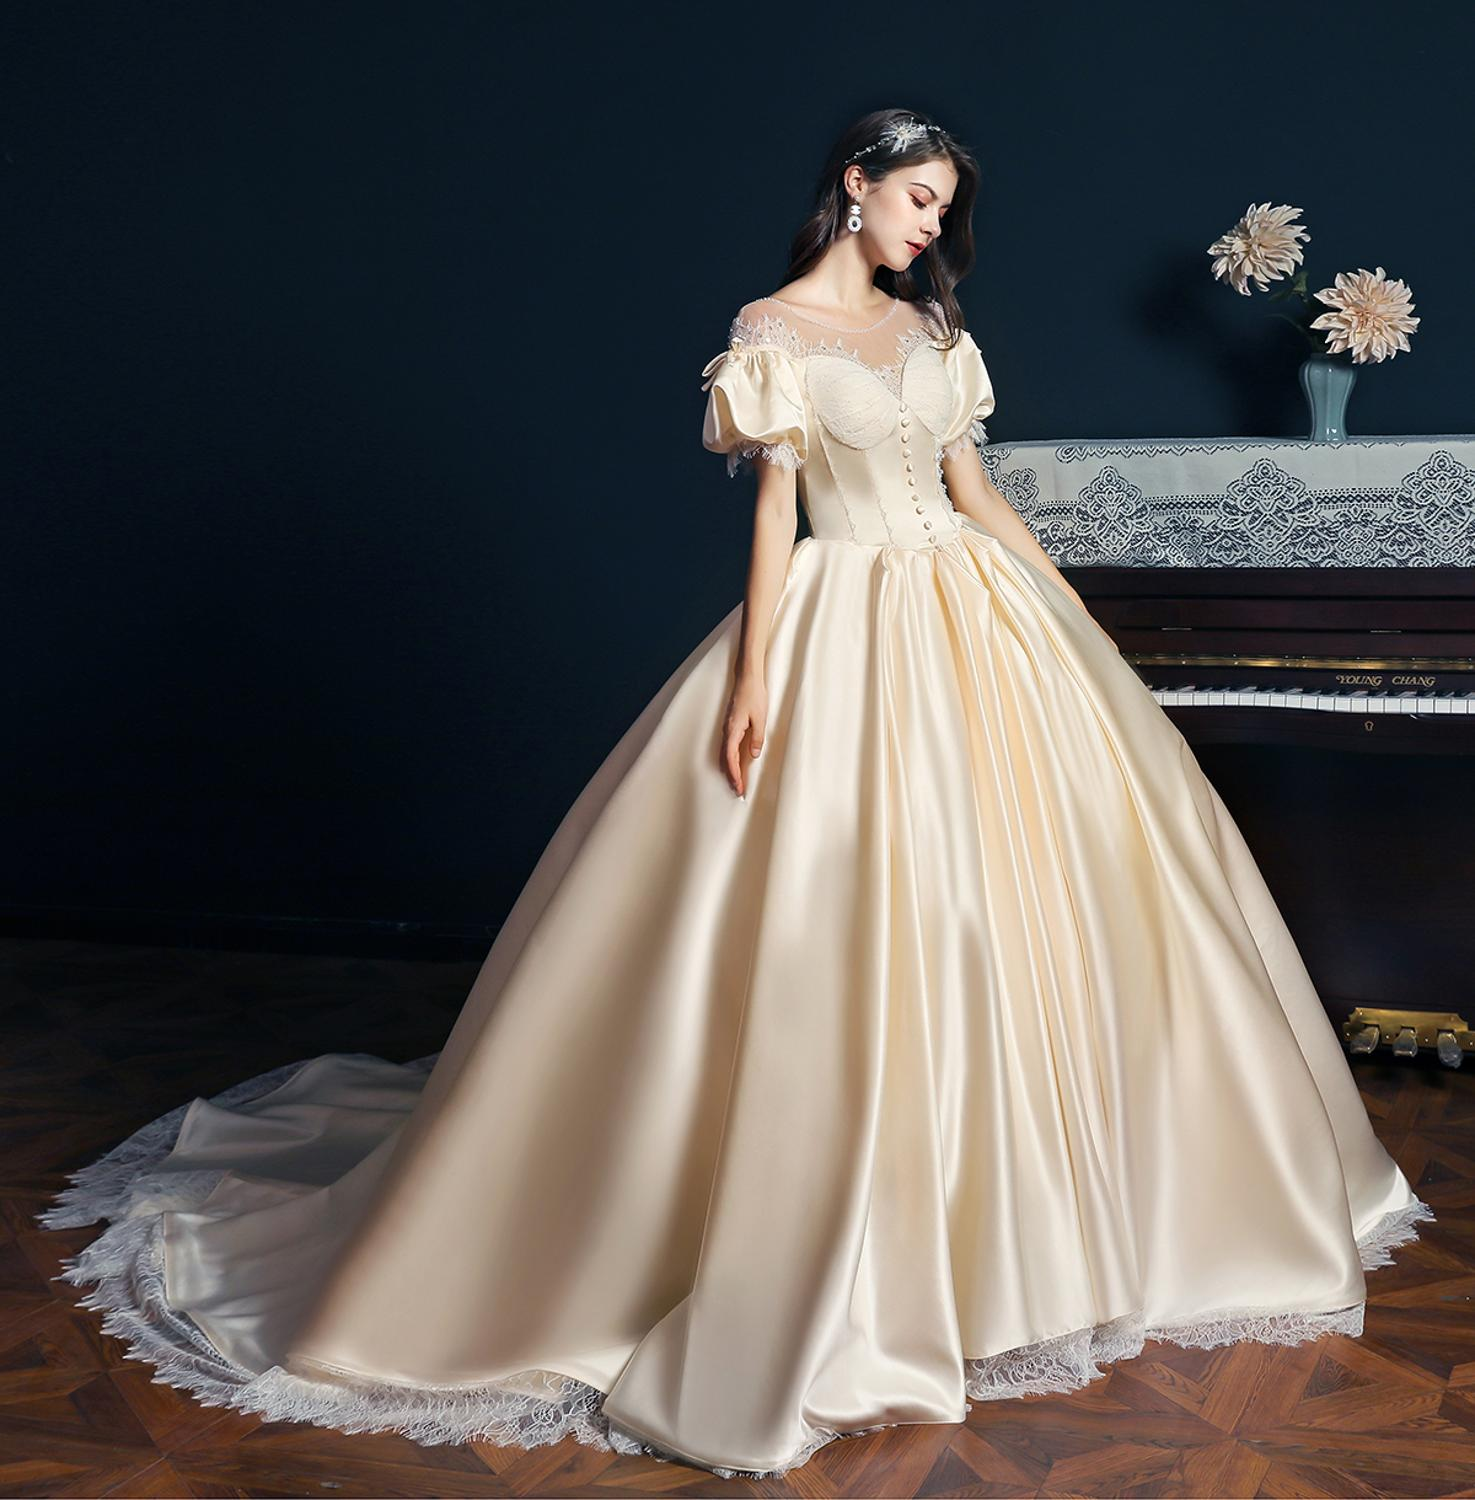 Get Palace Style Queen Wedding Dress Handmade Pearl Vintage Lantern Sleeve Cathedral Bridal Gown Factory Price Real Picture 4060#